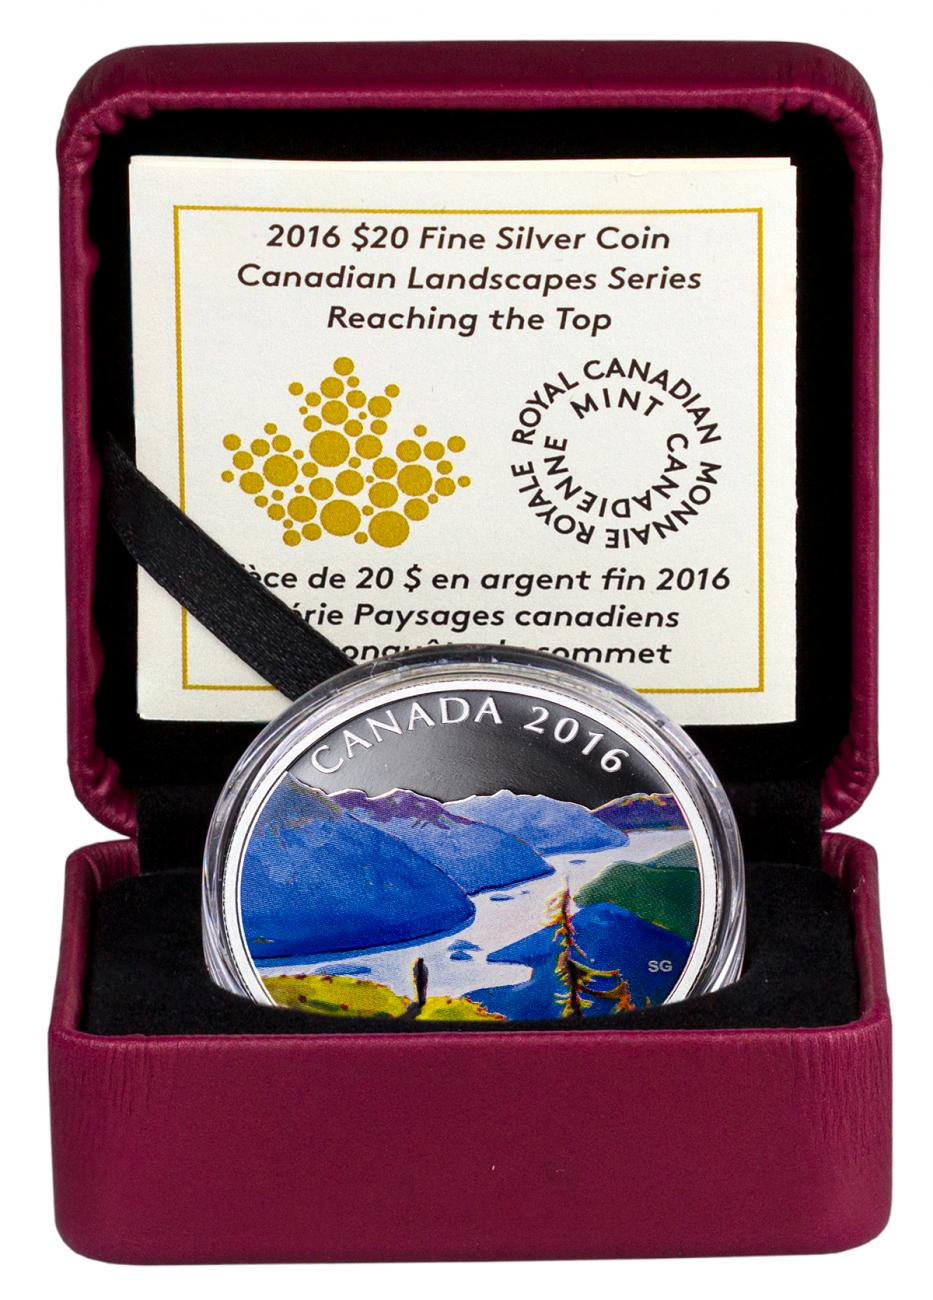 2016 Canada $20 1 oz. Colorized Proof Silver Canadian Landscapes - Reaching the Top - GEM Proof (Original Mint Packaging)